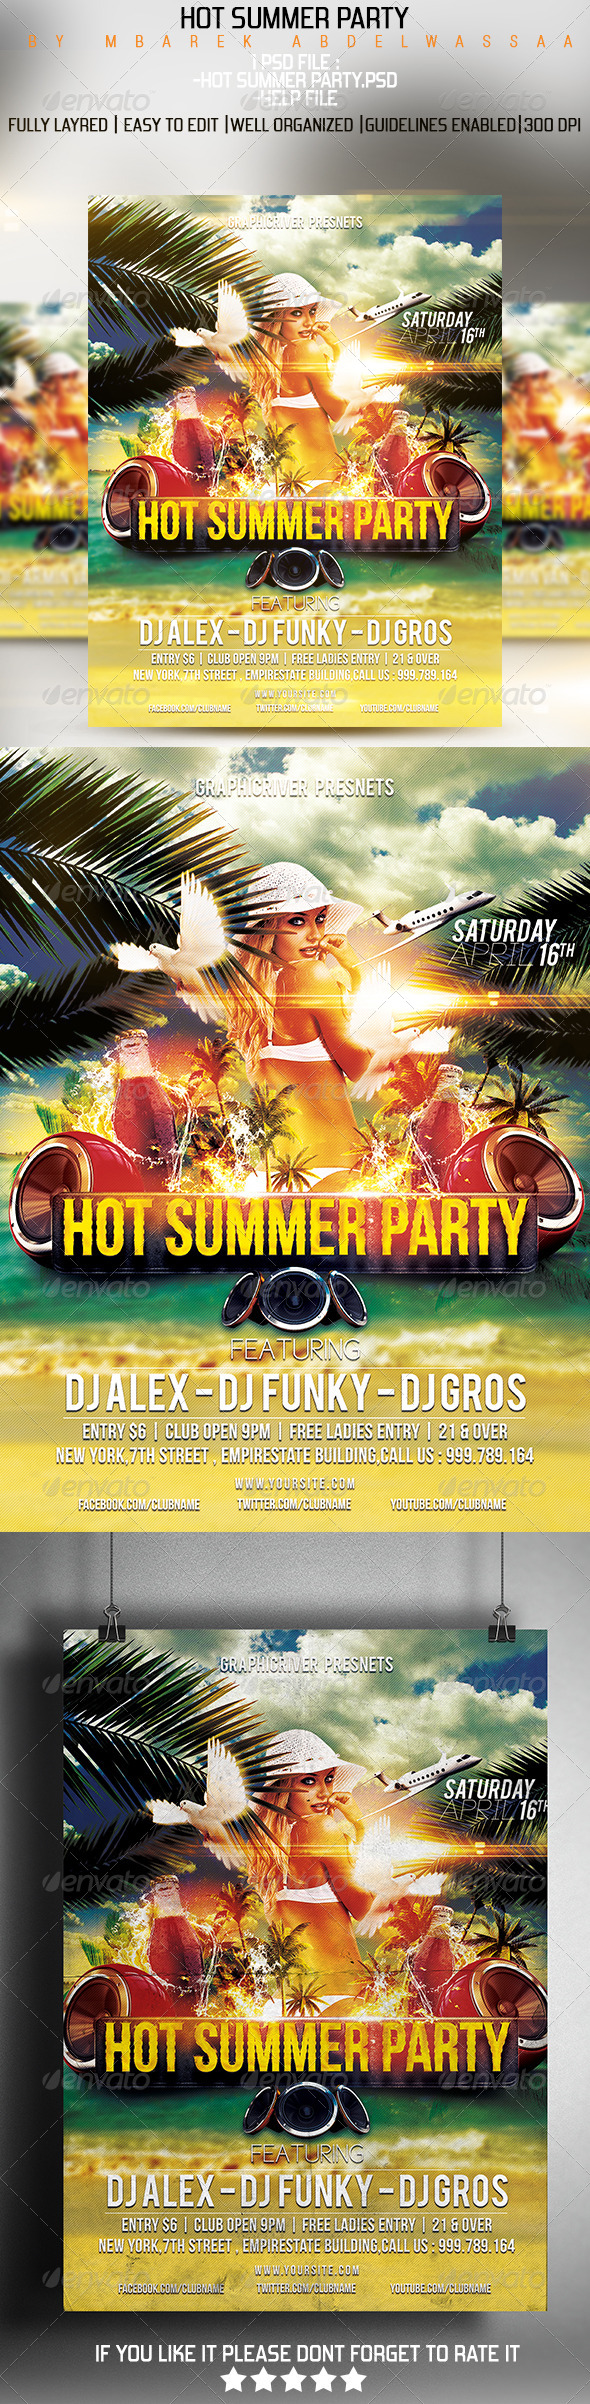 GraphicRiver Hot Summer Party flyer 7468950